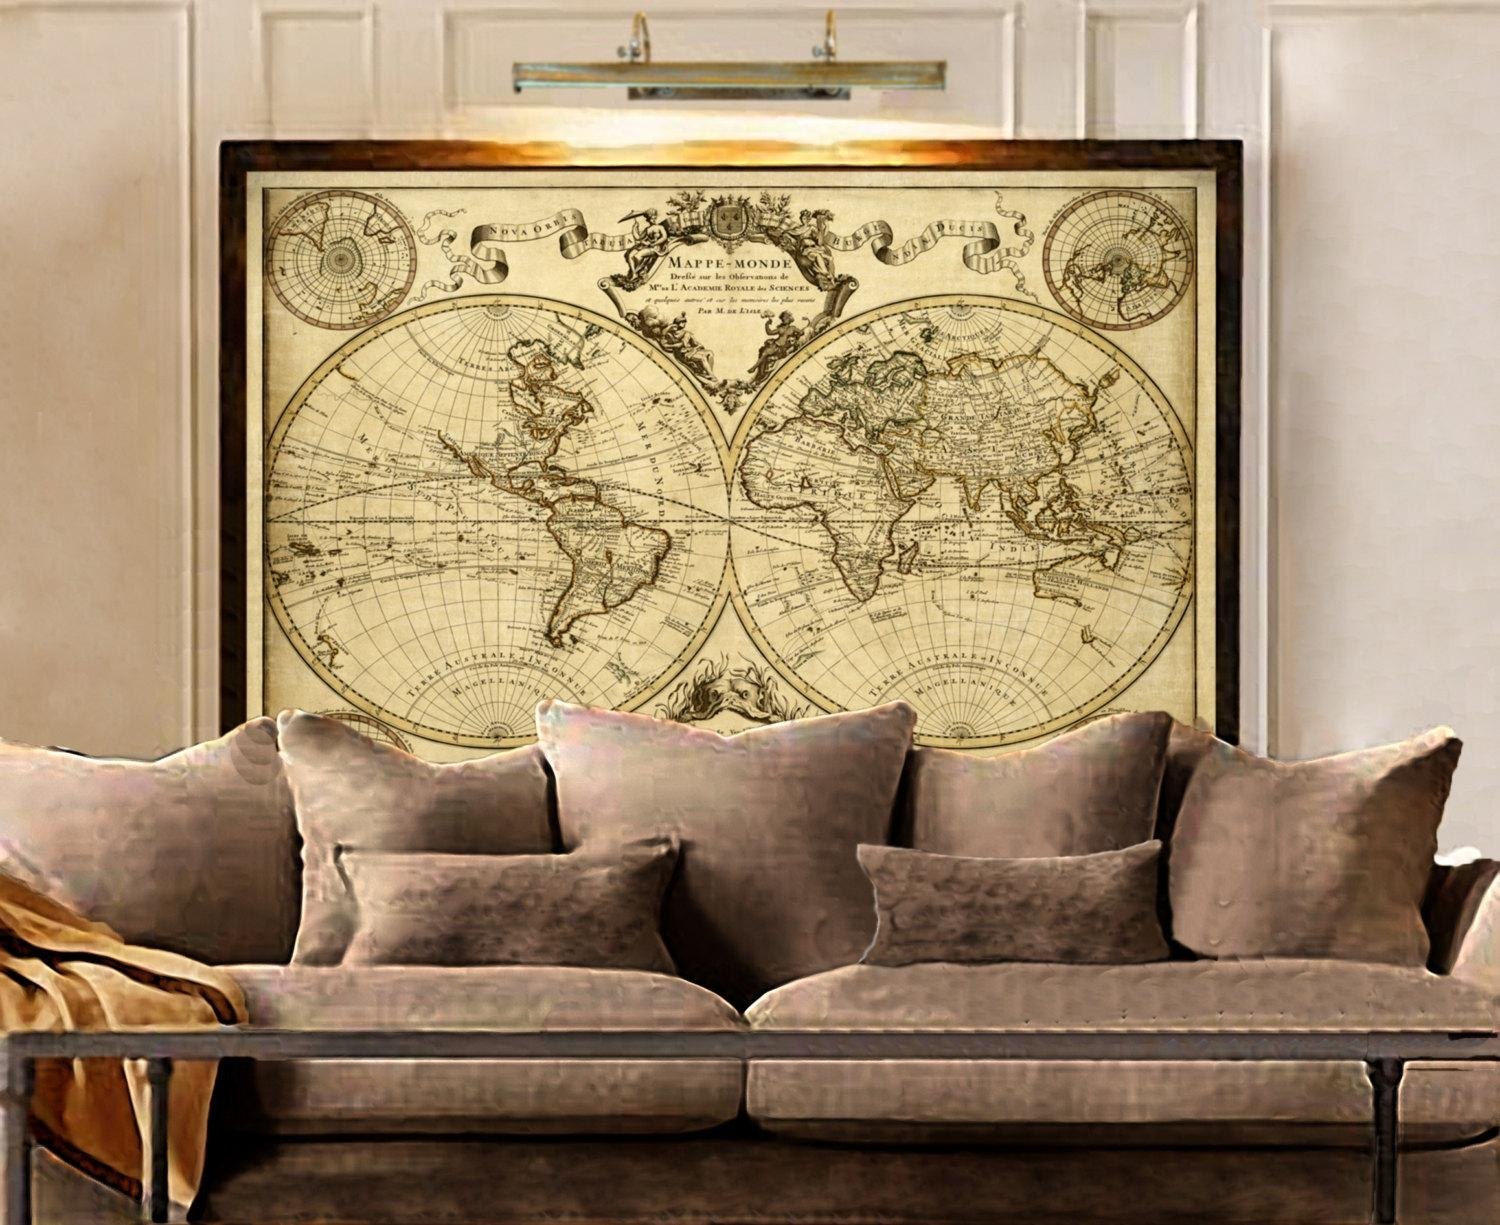 L'isle's 1720 Old World Map Historic Map Antique Style Intended For Antique Map Wall Art (View 4 of 20)